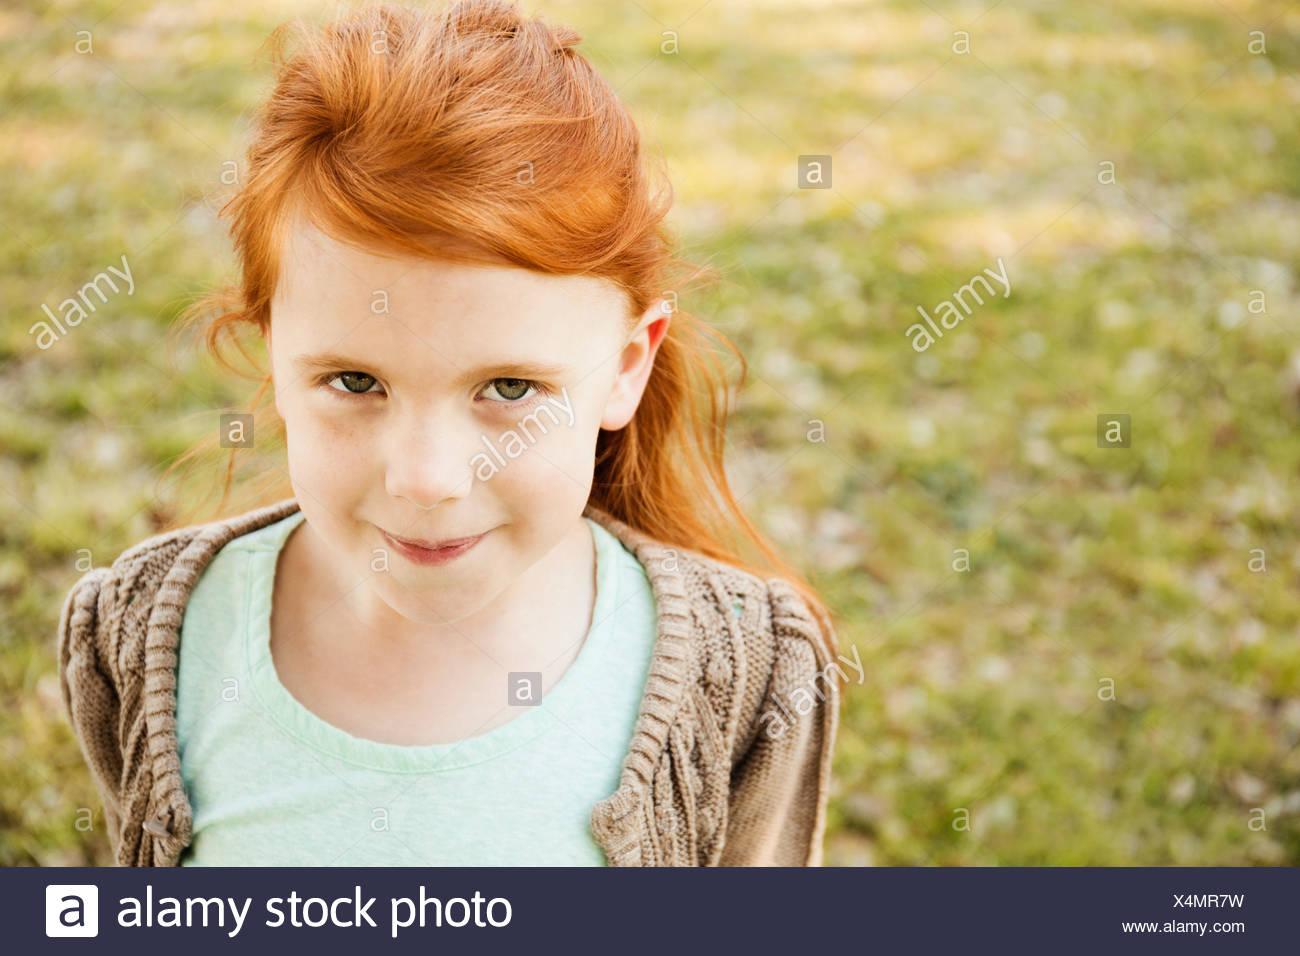 Portrait of red haired girl in park - Stock Image